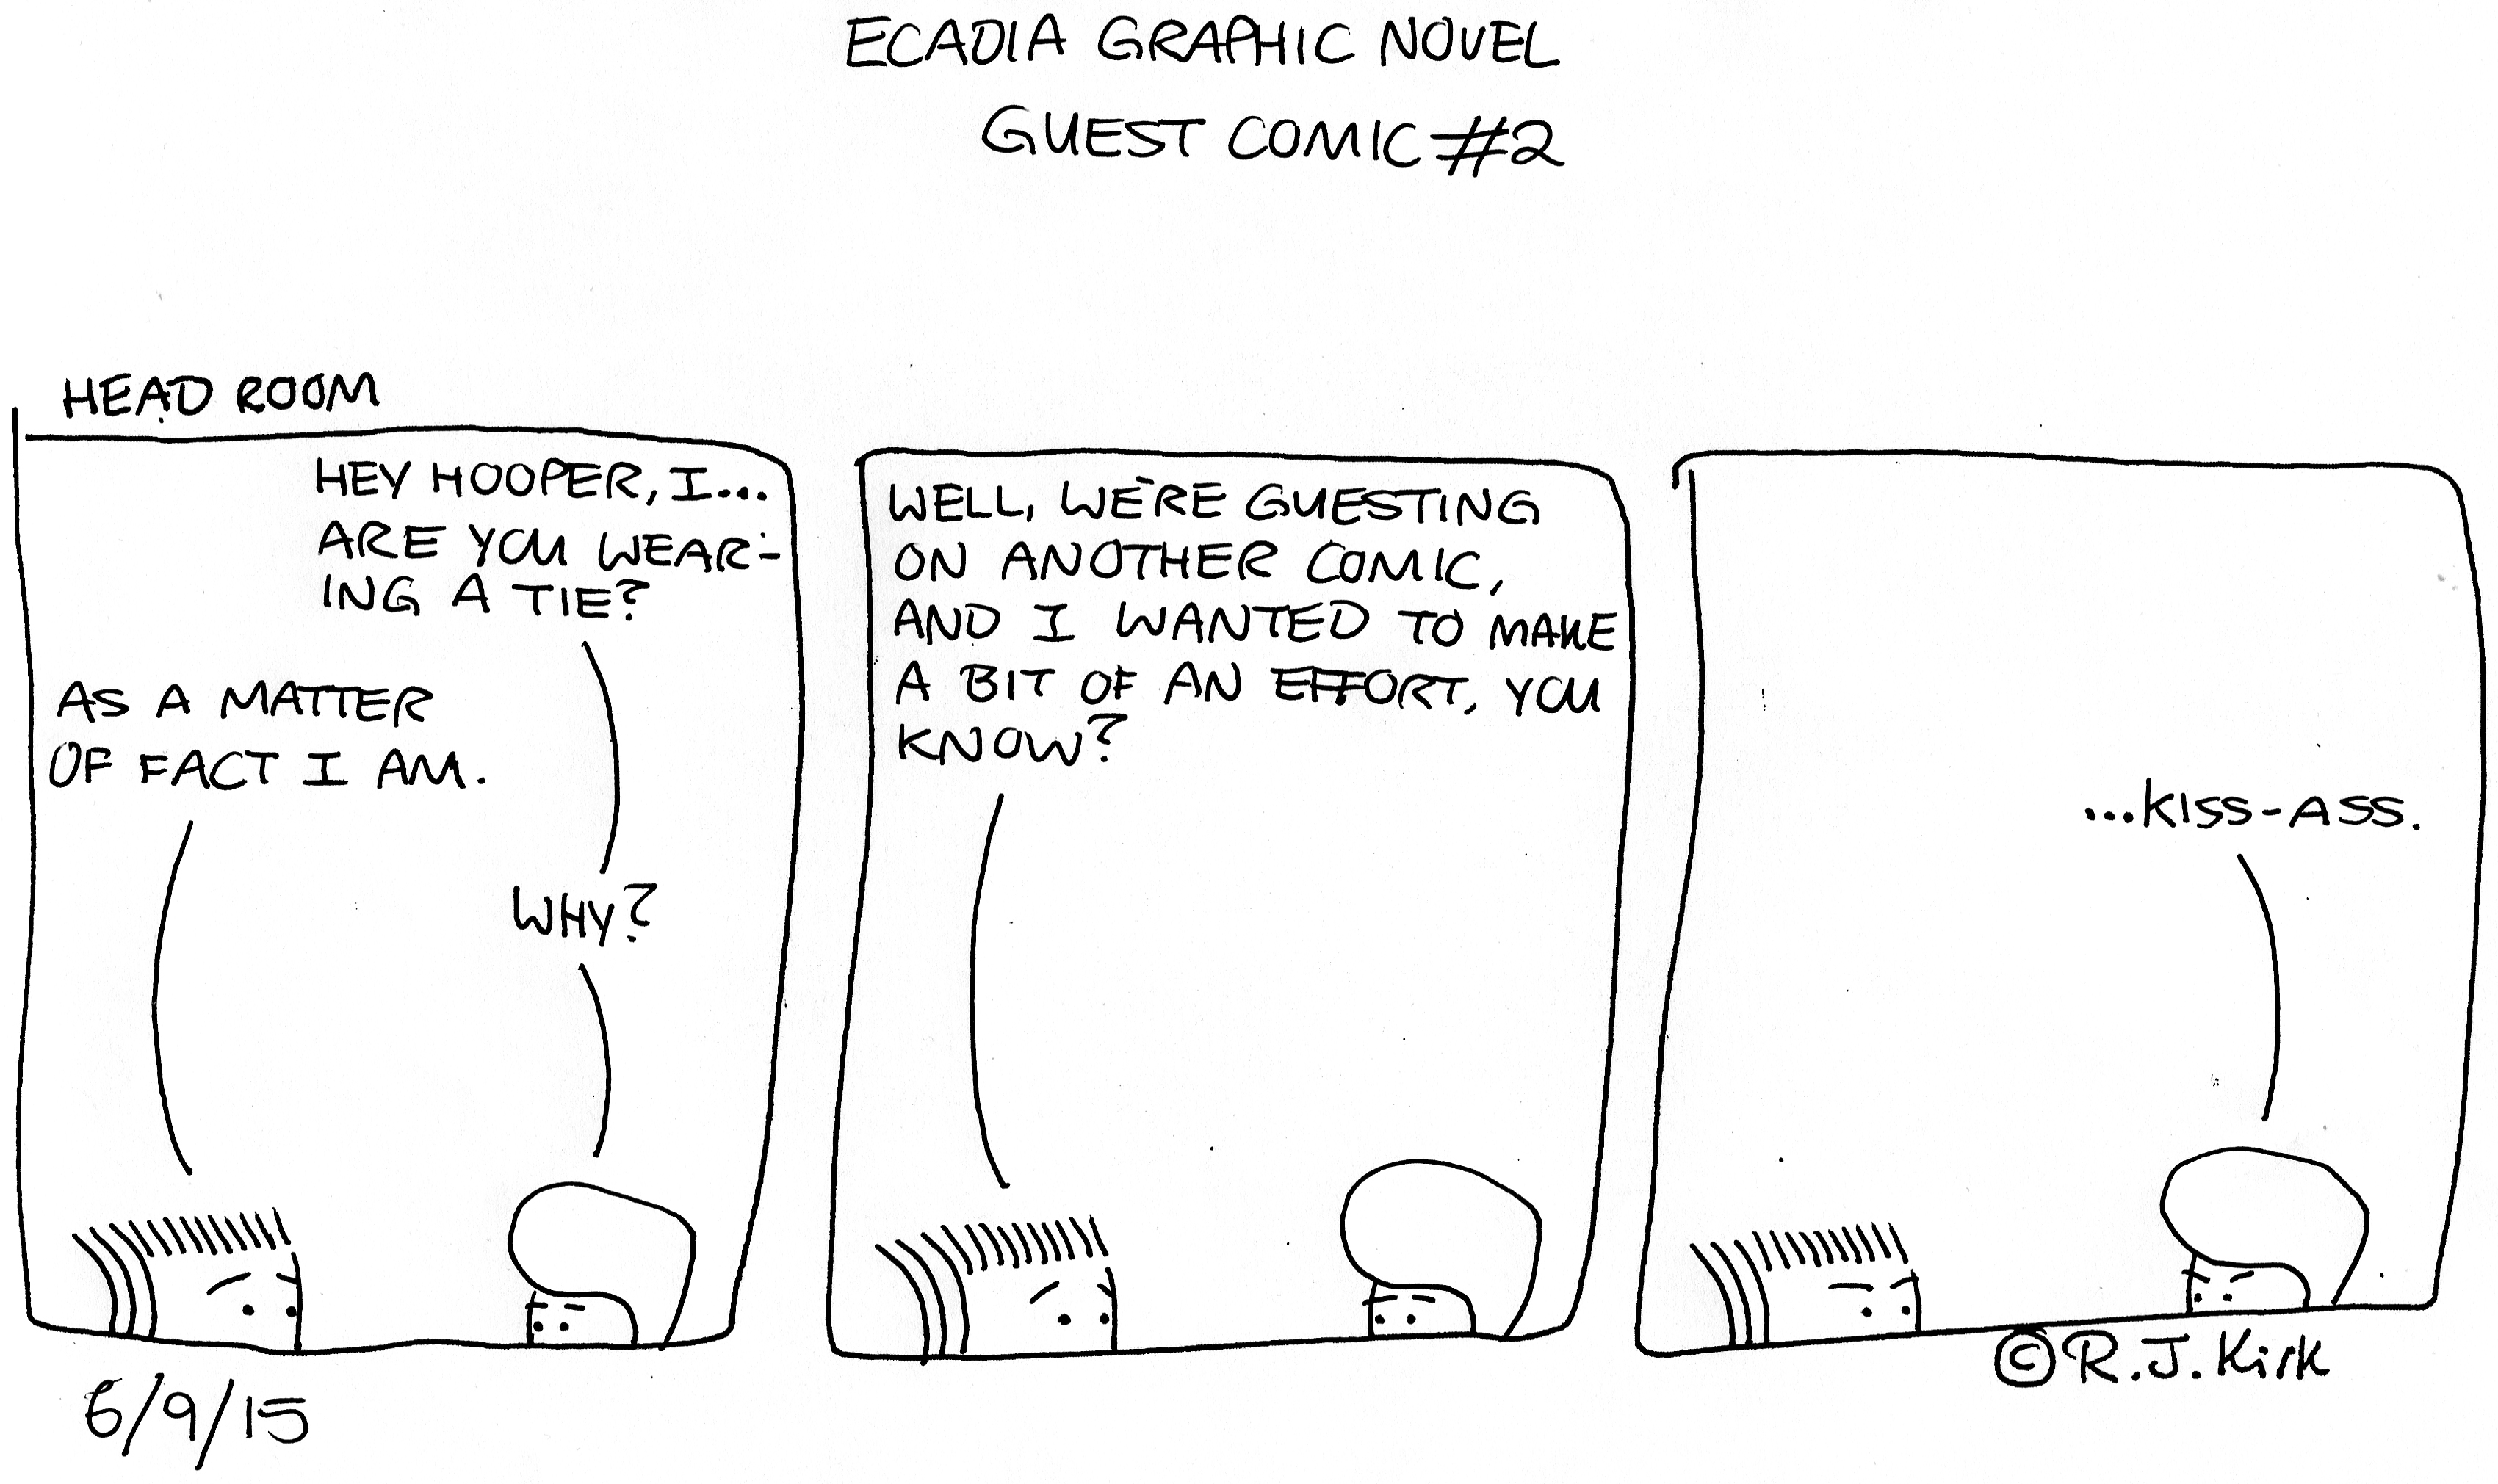 Ecadia Graphic Novel guest comic #2